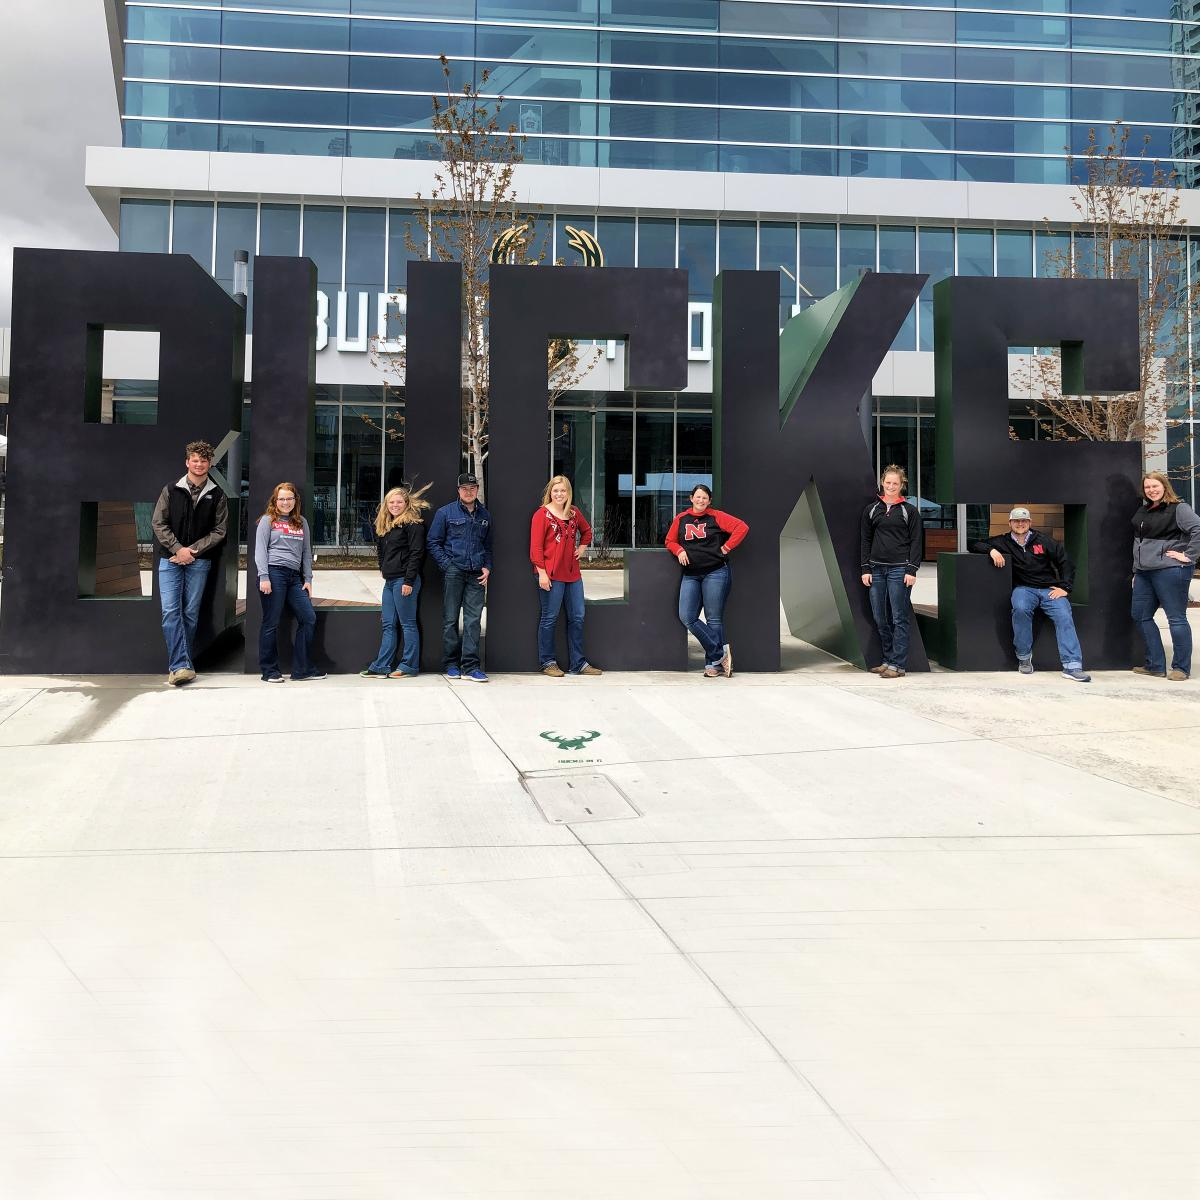 Student posing for a picture infront of big letter-sculpture spelled B U C K S.